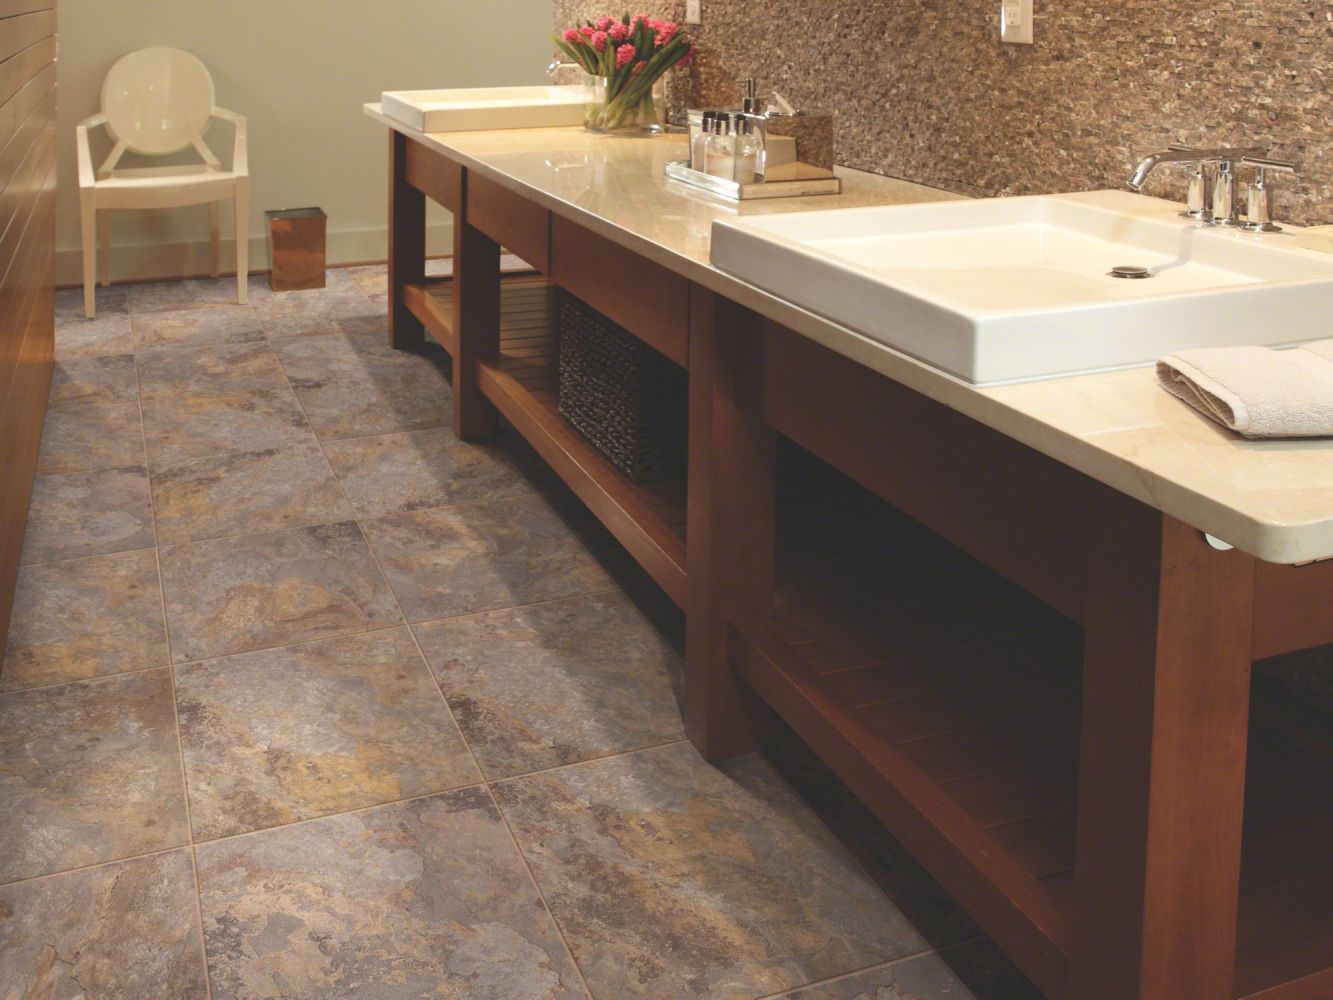 Shaw Floors Nfa HS Serenity Lake Tile Walnut 00701_VH505